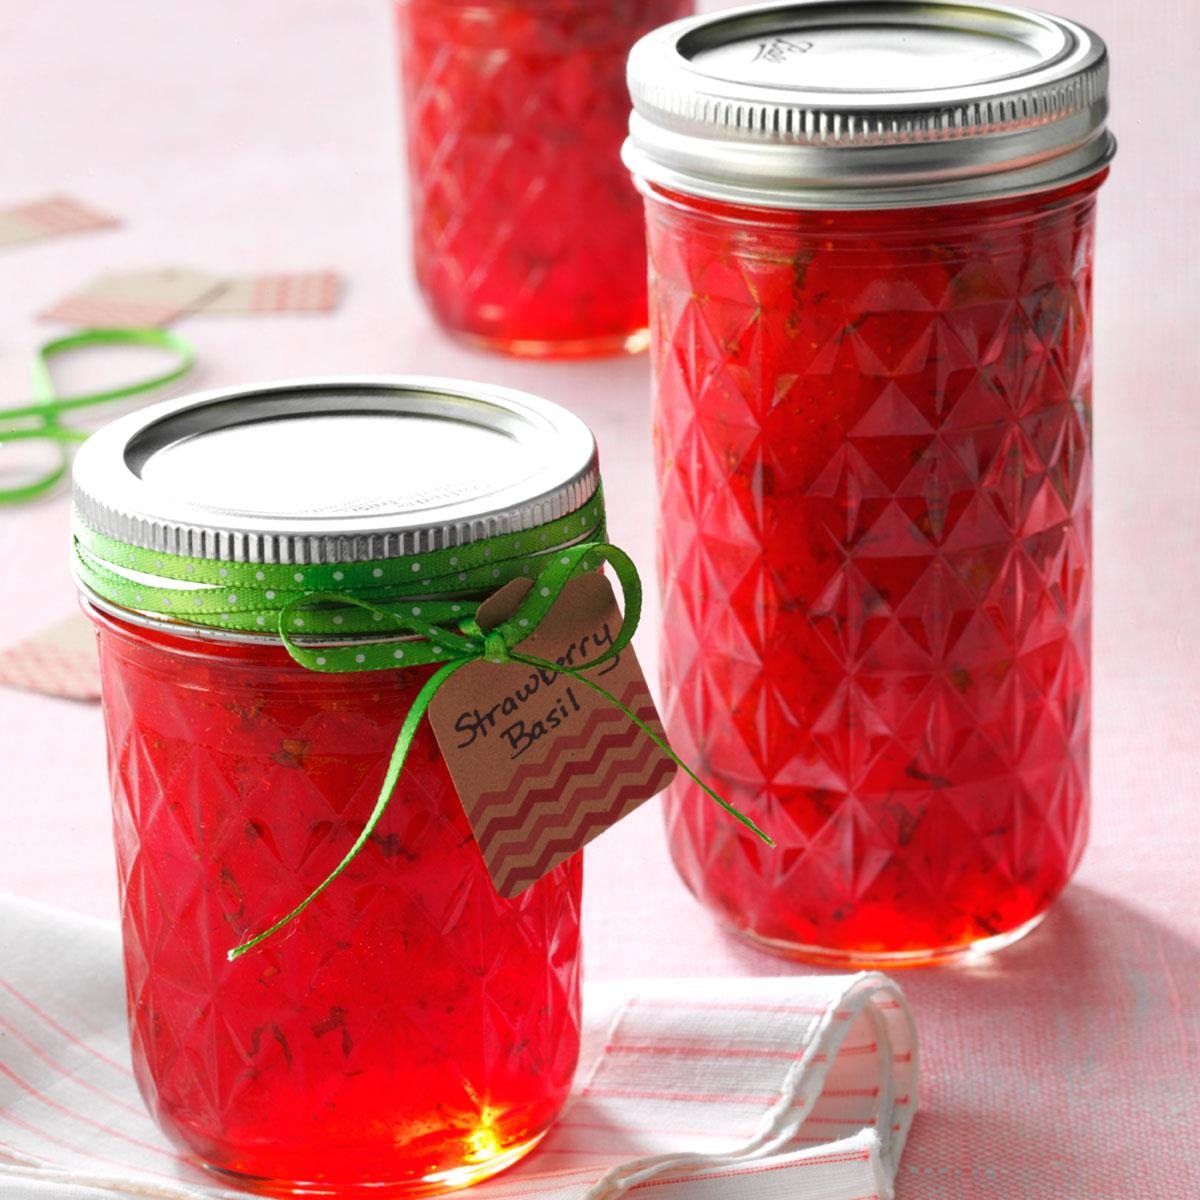 Mar 24, · Jam-making is a fun and easy hobby that Carroll is eager to share with others. Each year, she donates jam-making classes in her home as a silent auction items at Scripps galas.